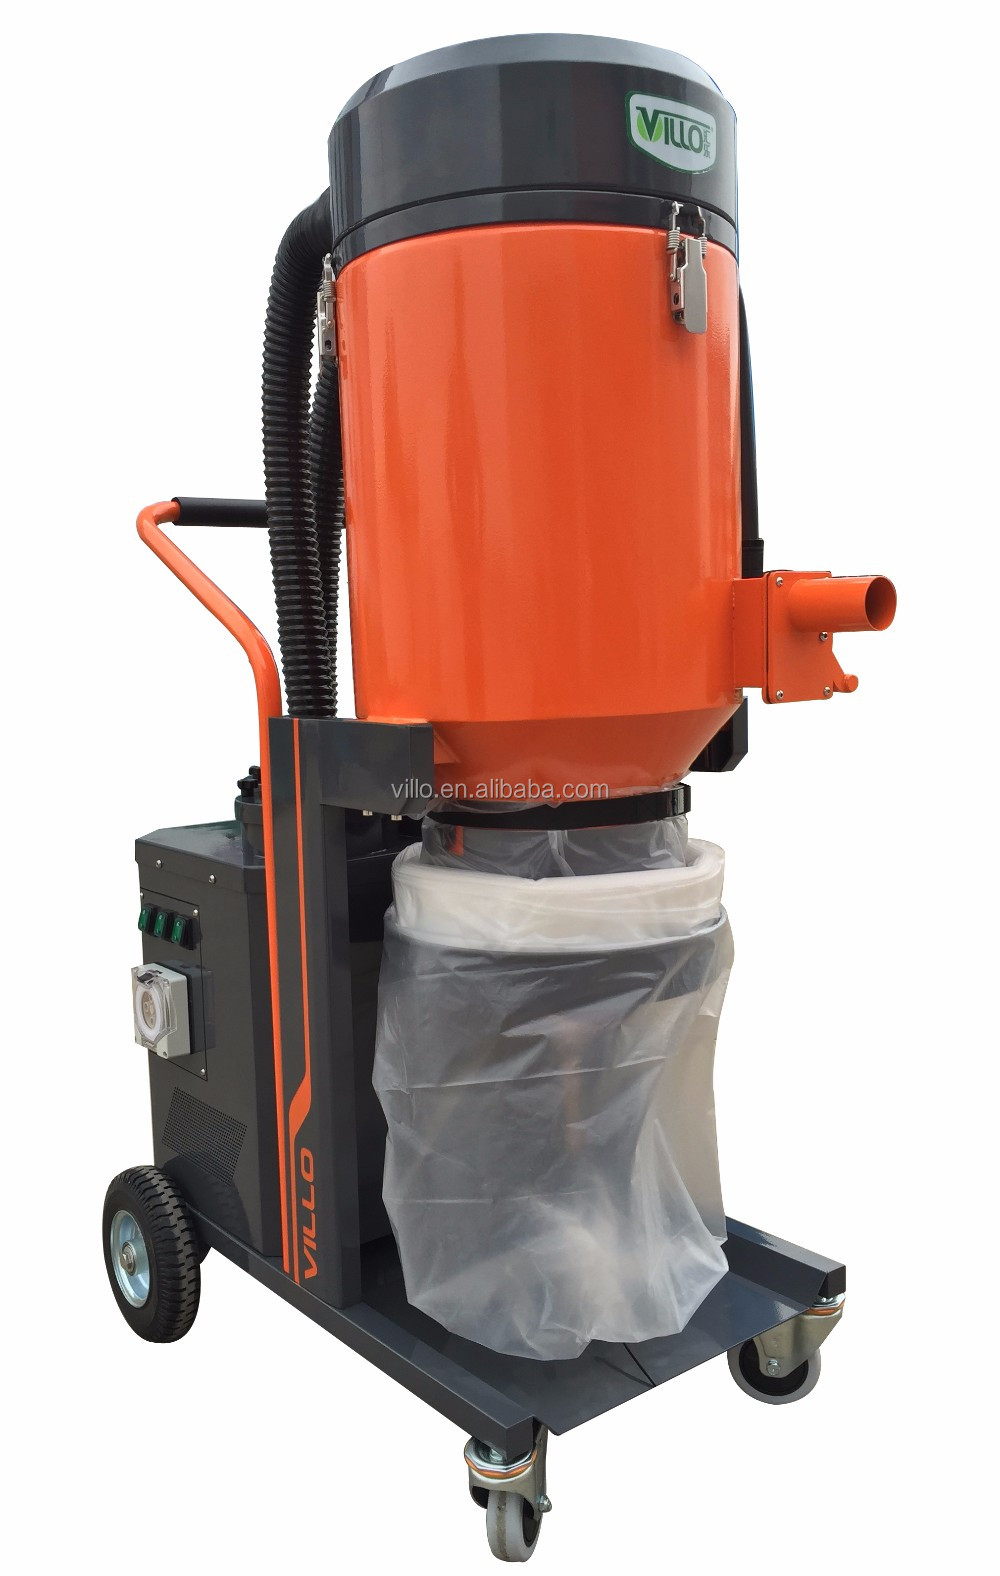 New Designed Concrete Dust Extractor with HEPA 13 Filter and Anti-static Hoses